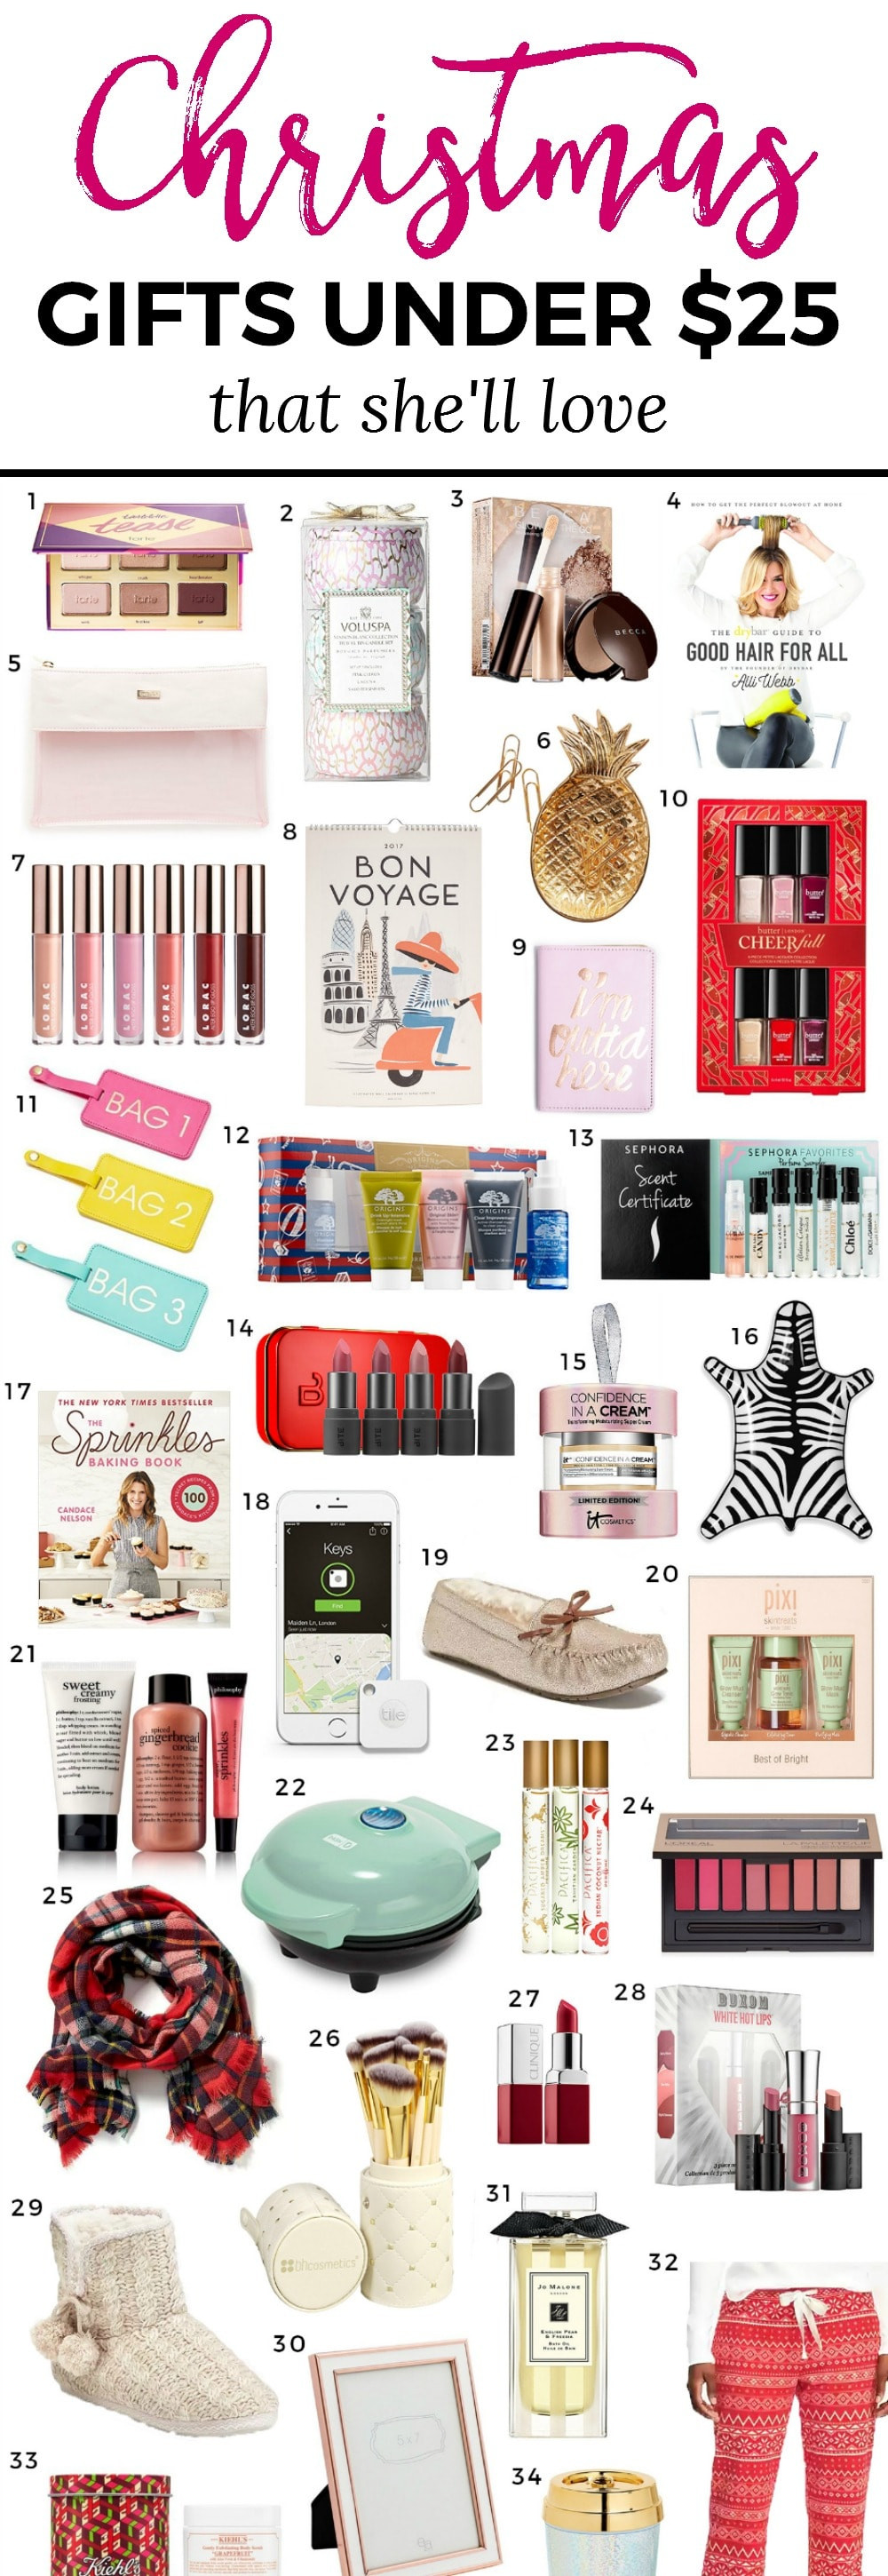 Best ideas about Gift Ideas Young Adults Under 25 . Save or Pin The Best Christmas Gift Ideas for Women under $25 Now.